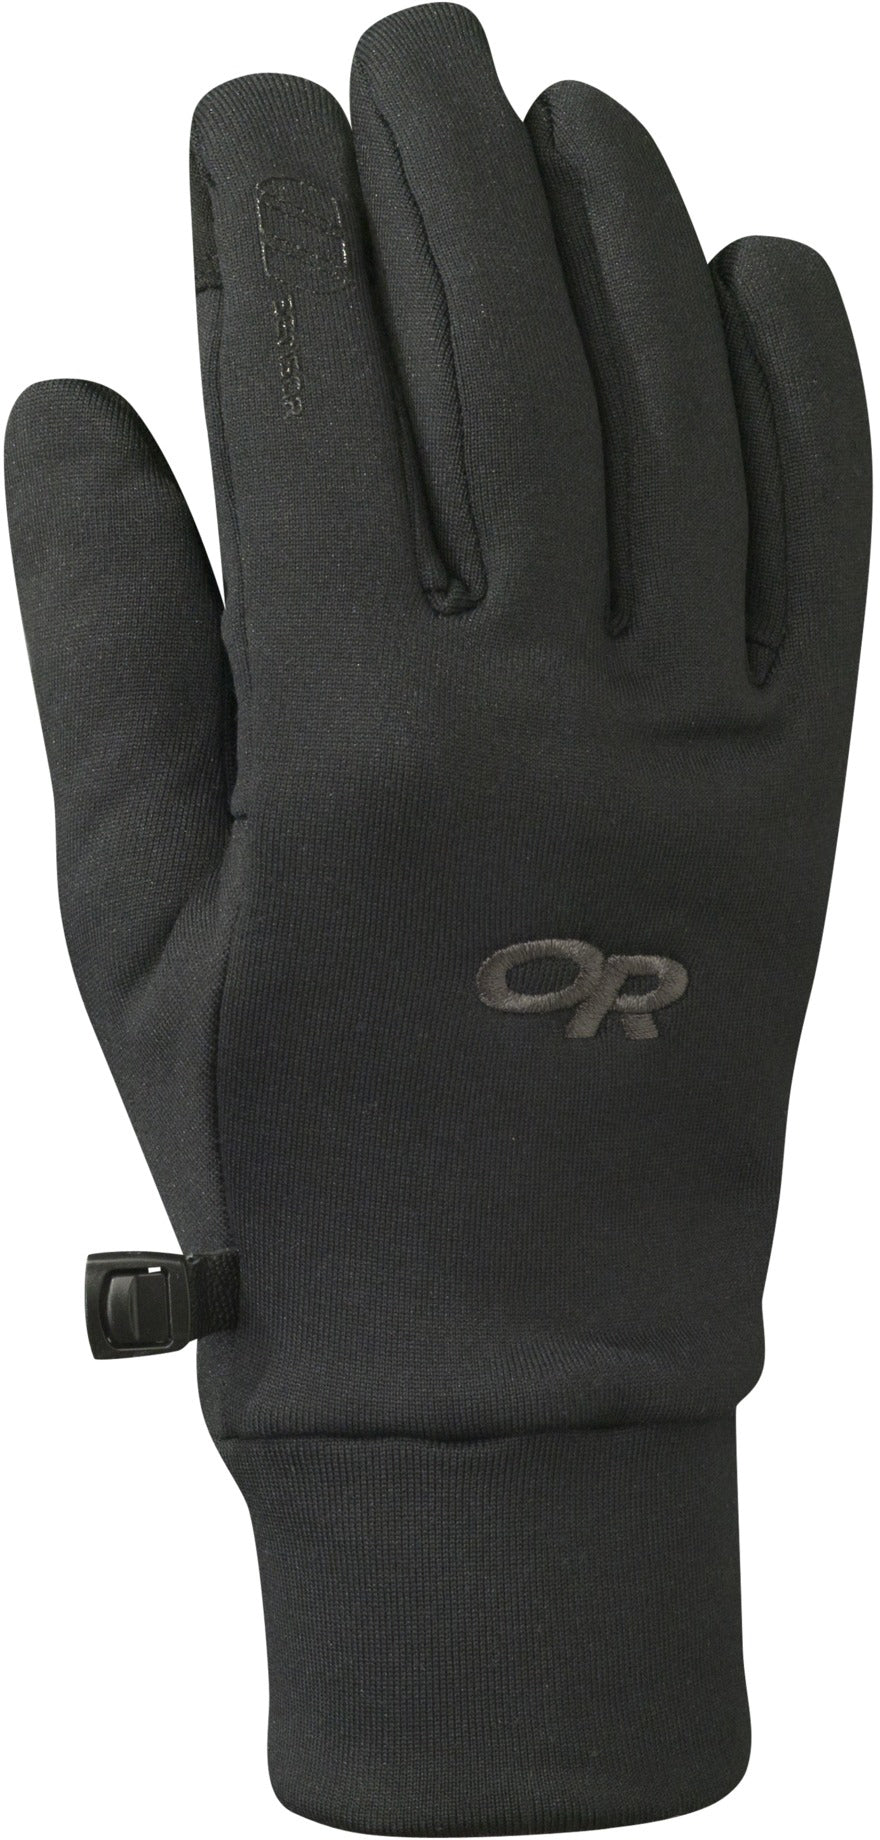 Outdoor Research - Women's PL 150 Sensor - Black